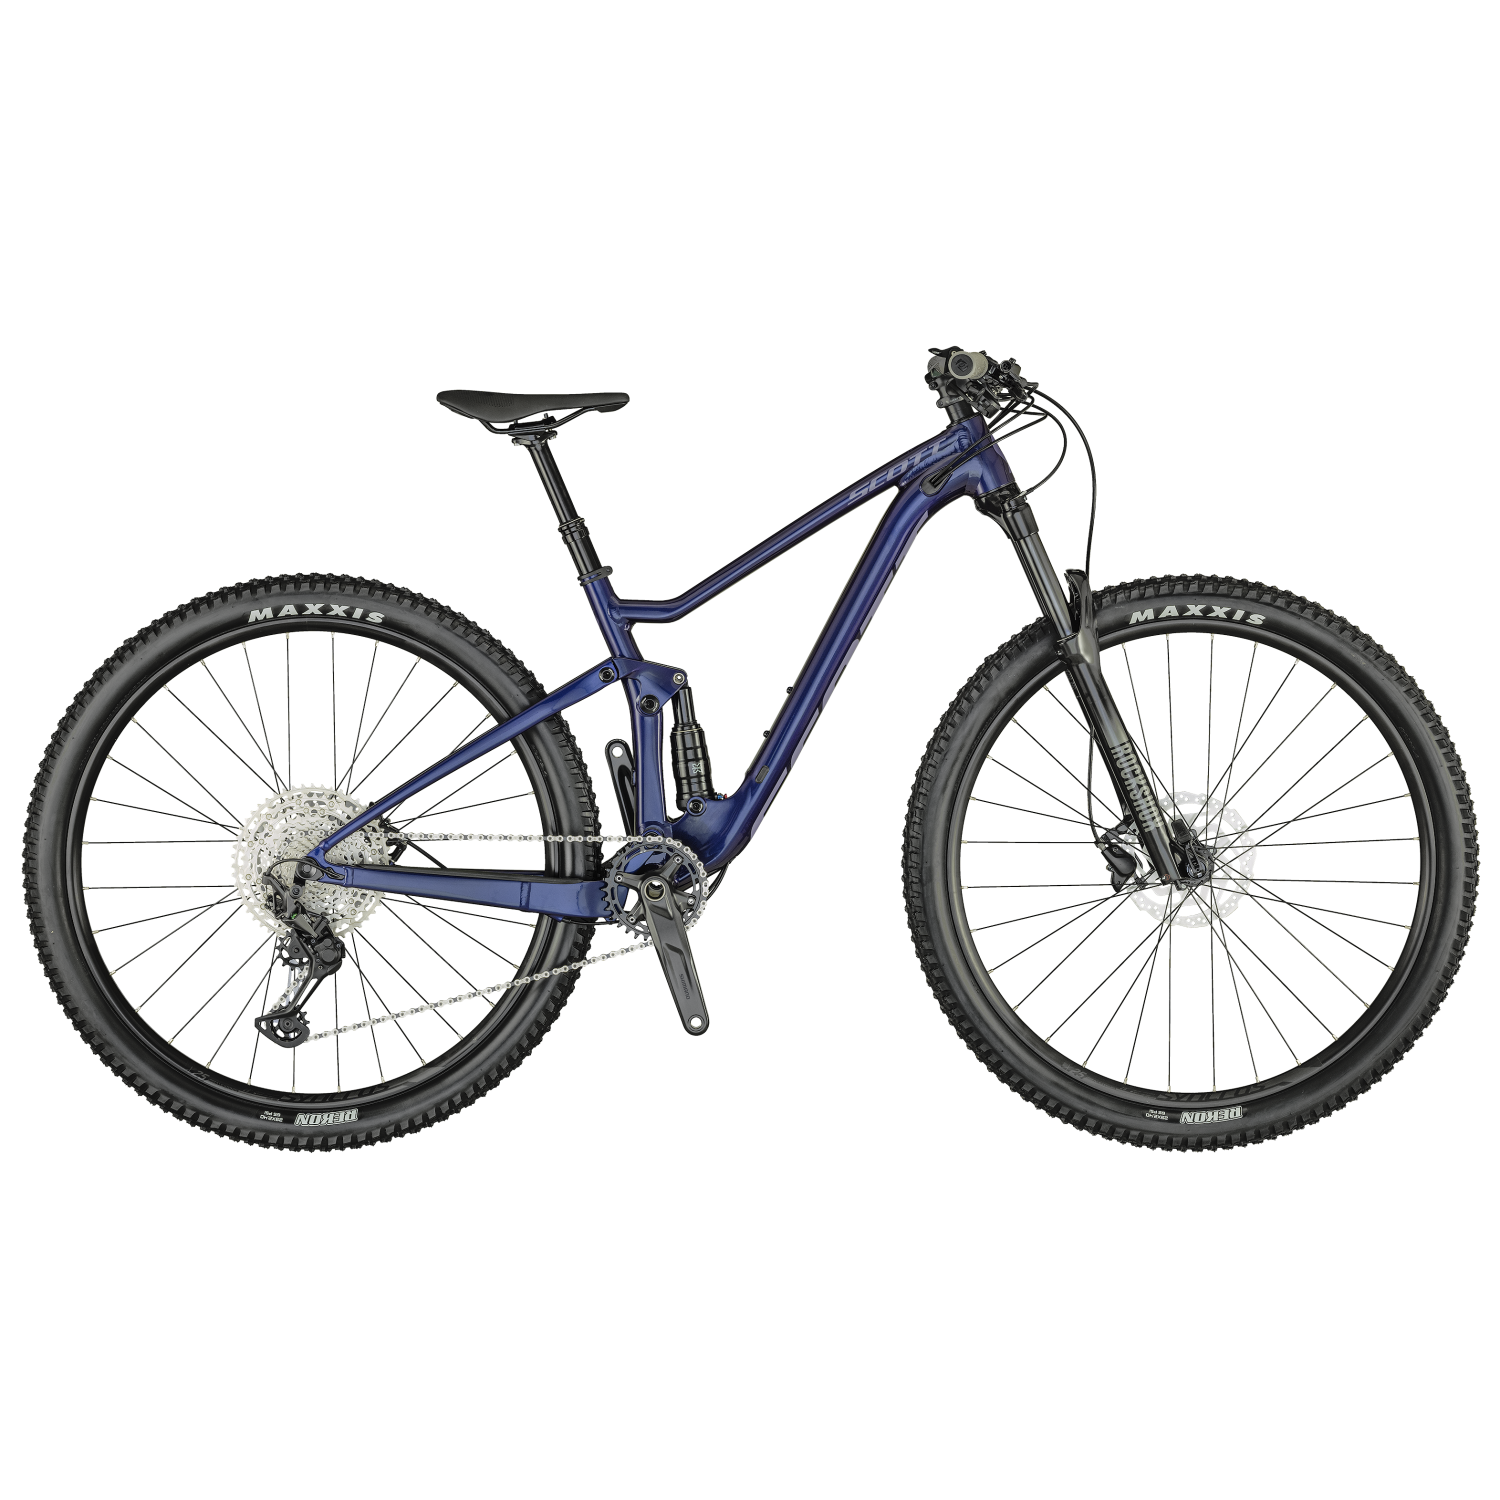 Scott Contessa Spark 930 2021